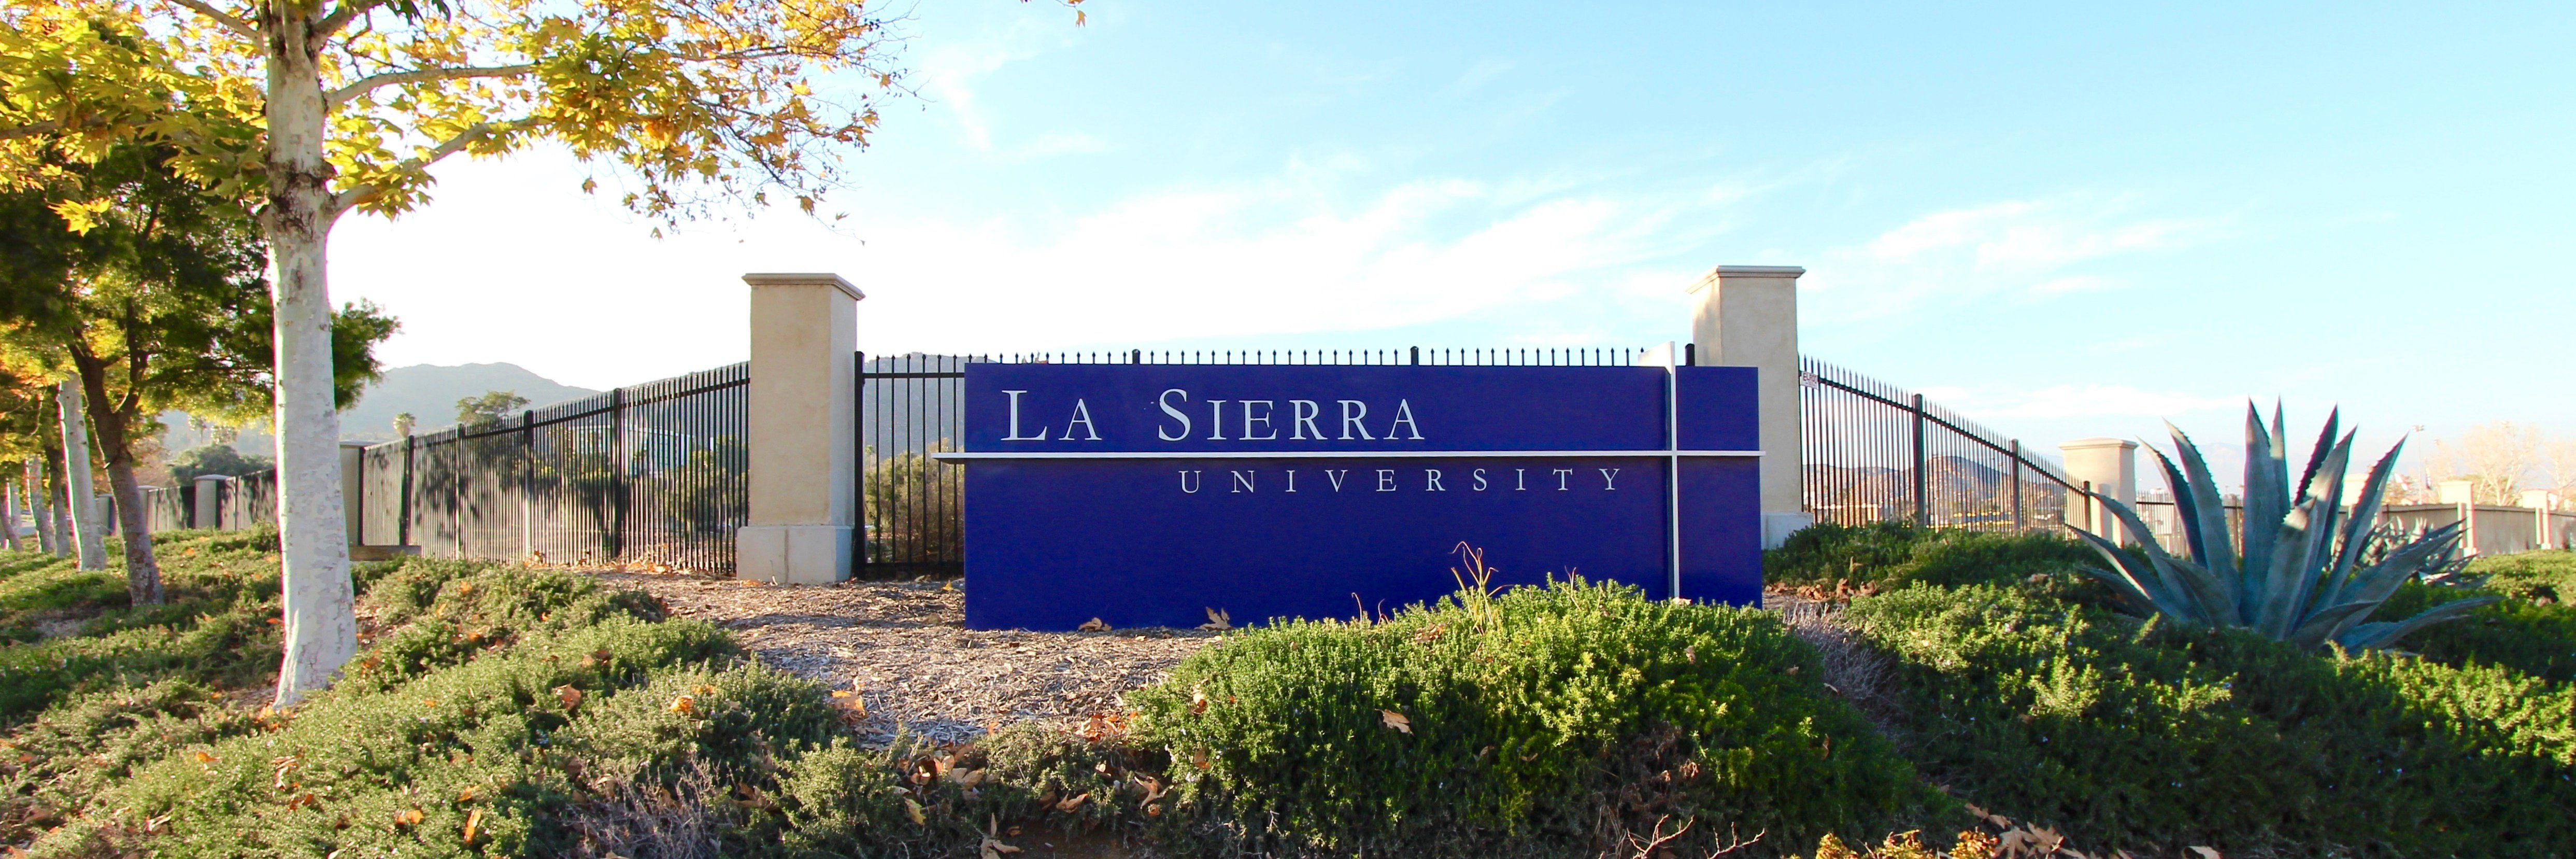 La Sierra is a community located in Riverside California